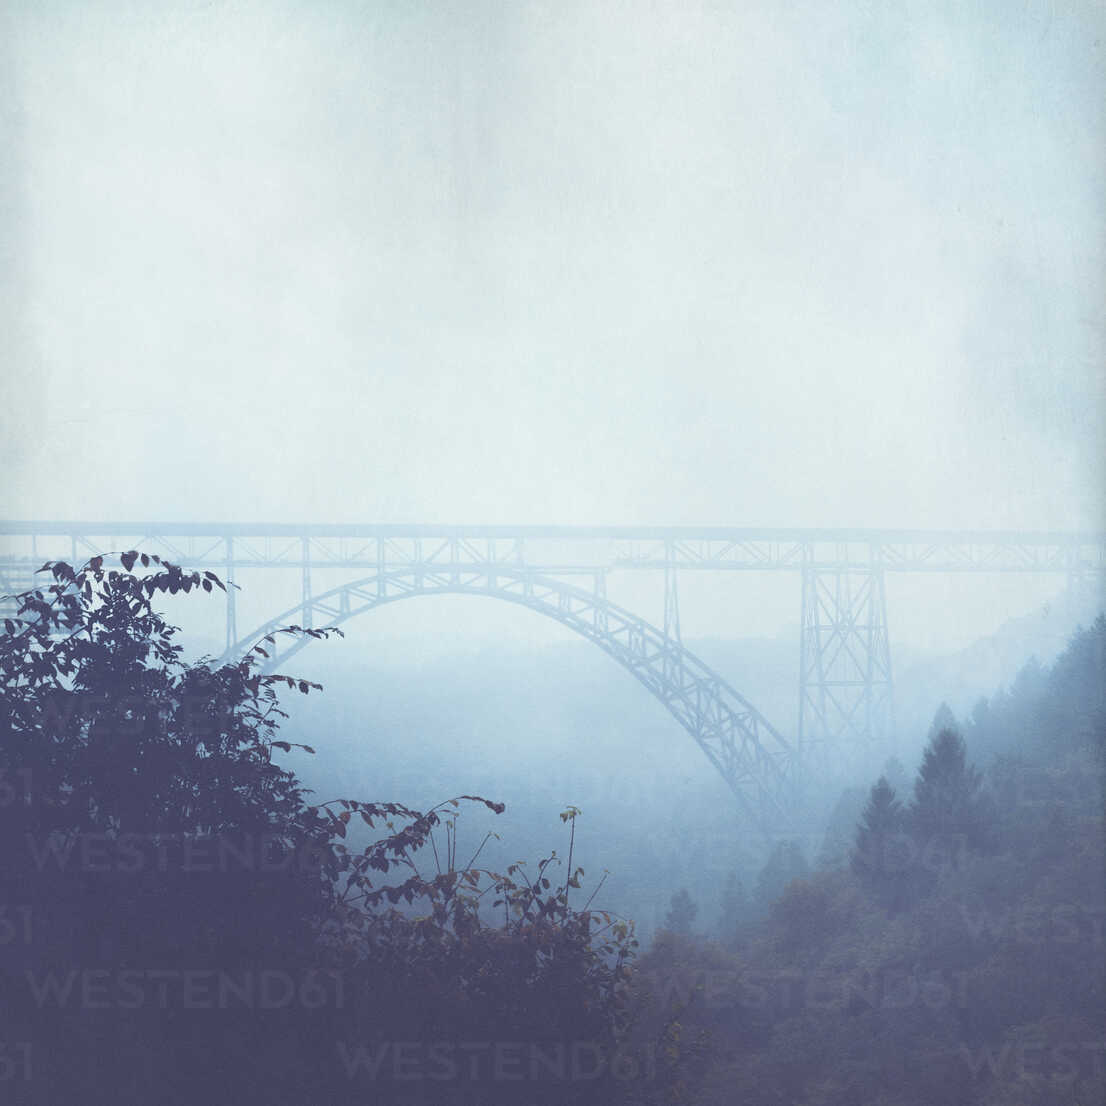 Bridge and fog in autumn - DWIF00959 - Dirk Wüstenhagen/Westend61